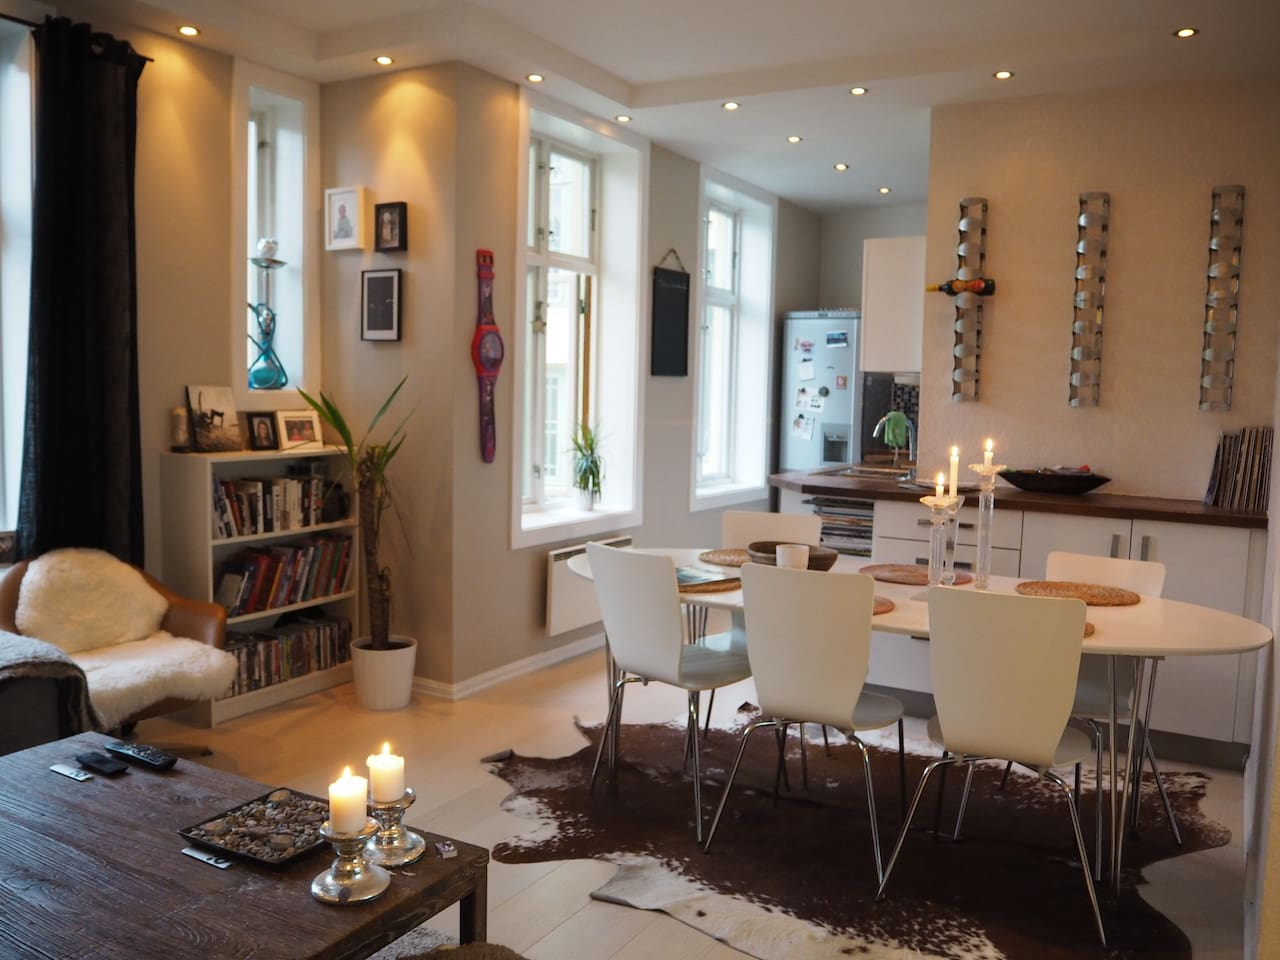 The living room, kitchen and dining table